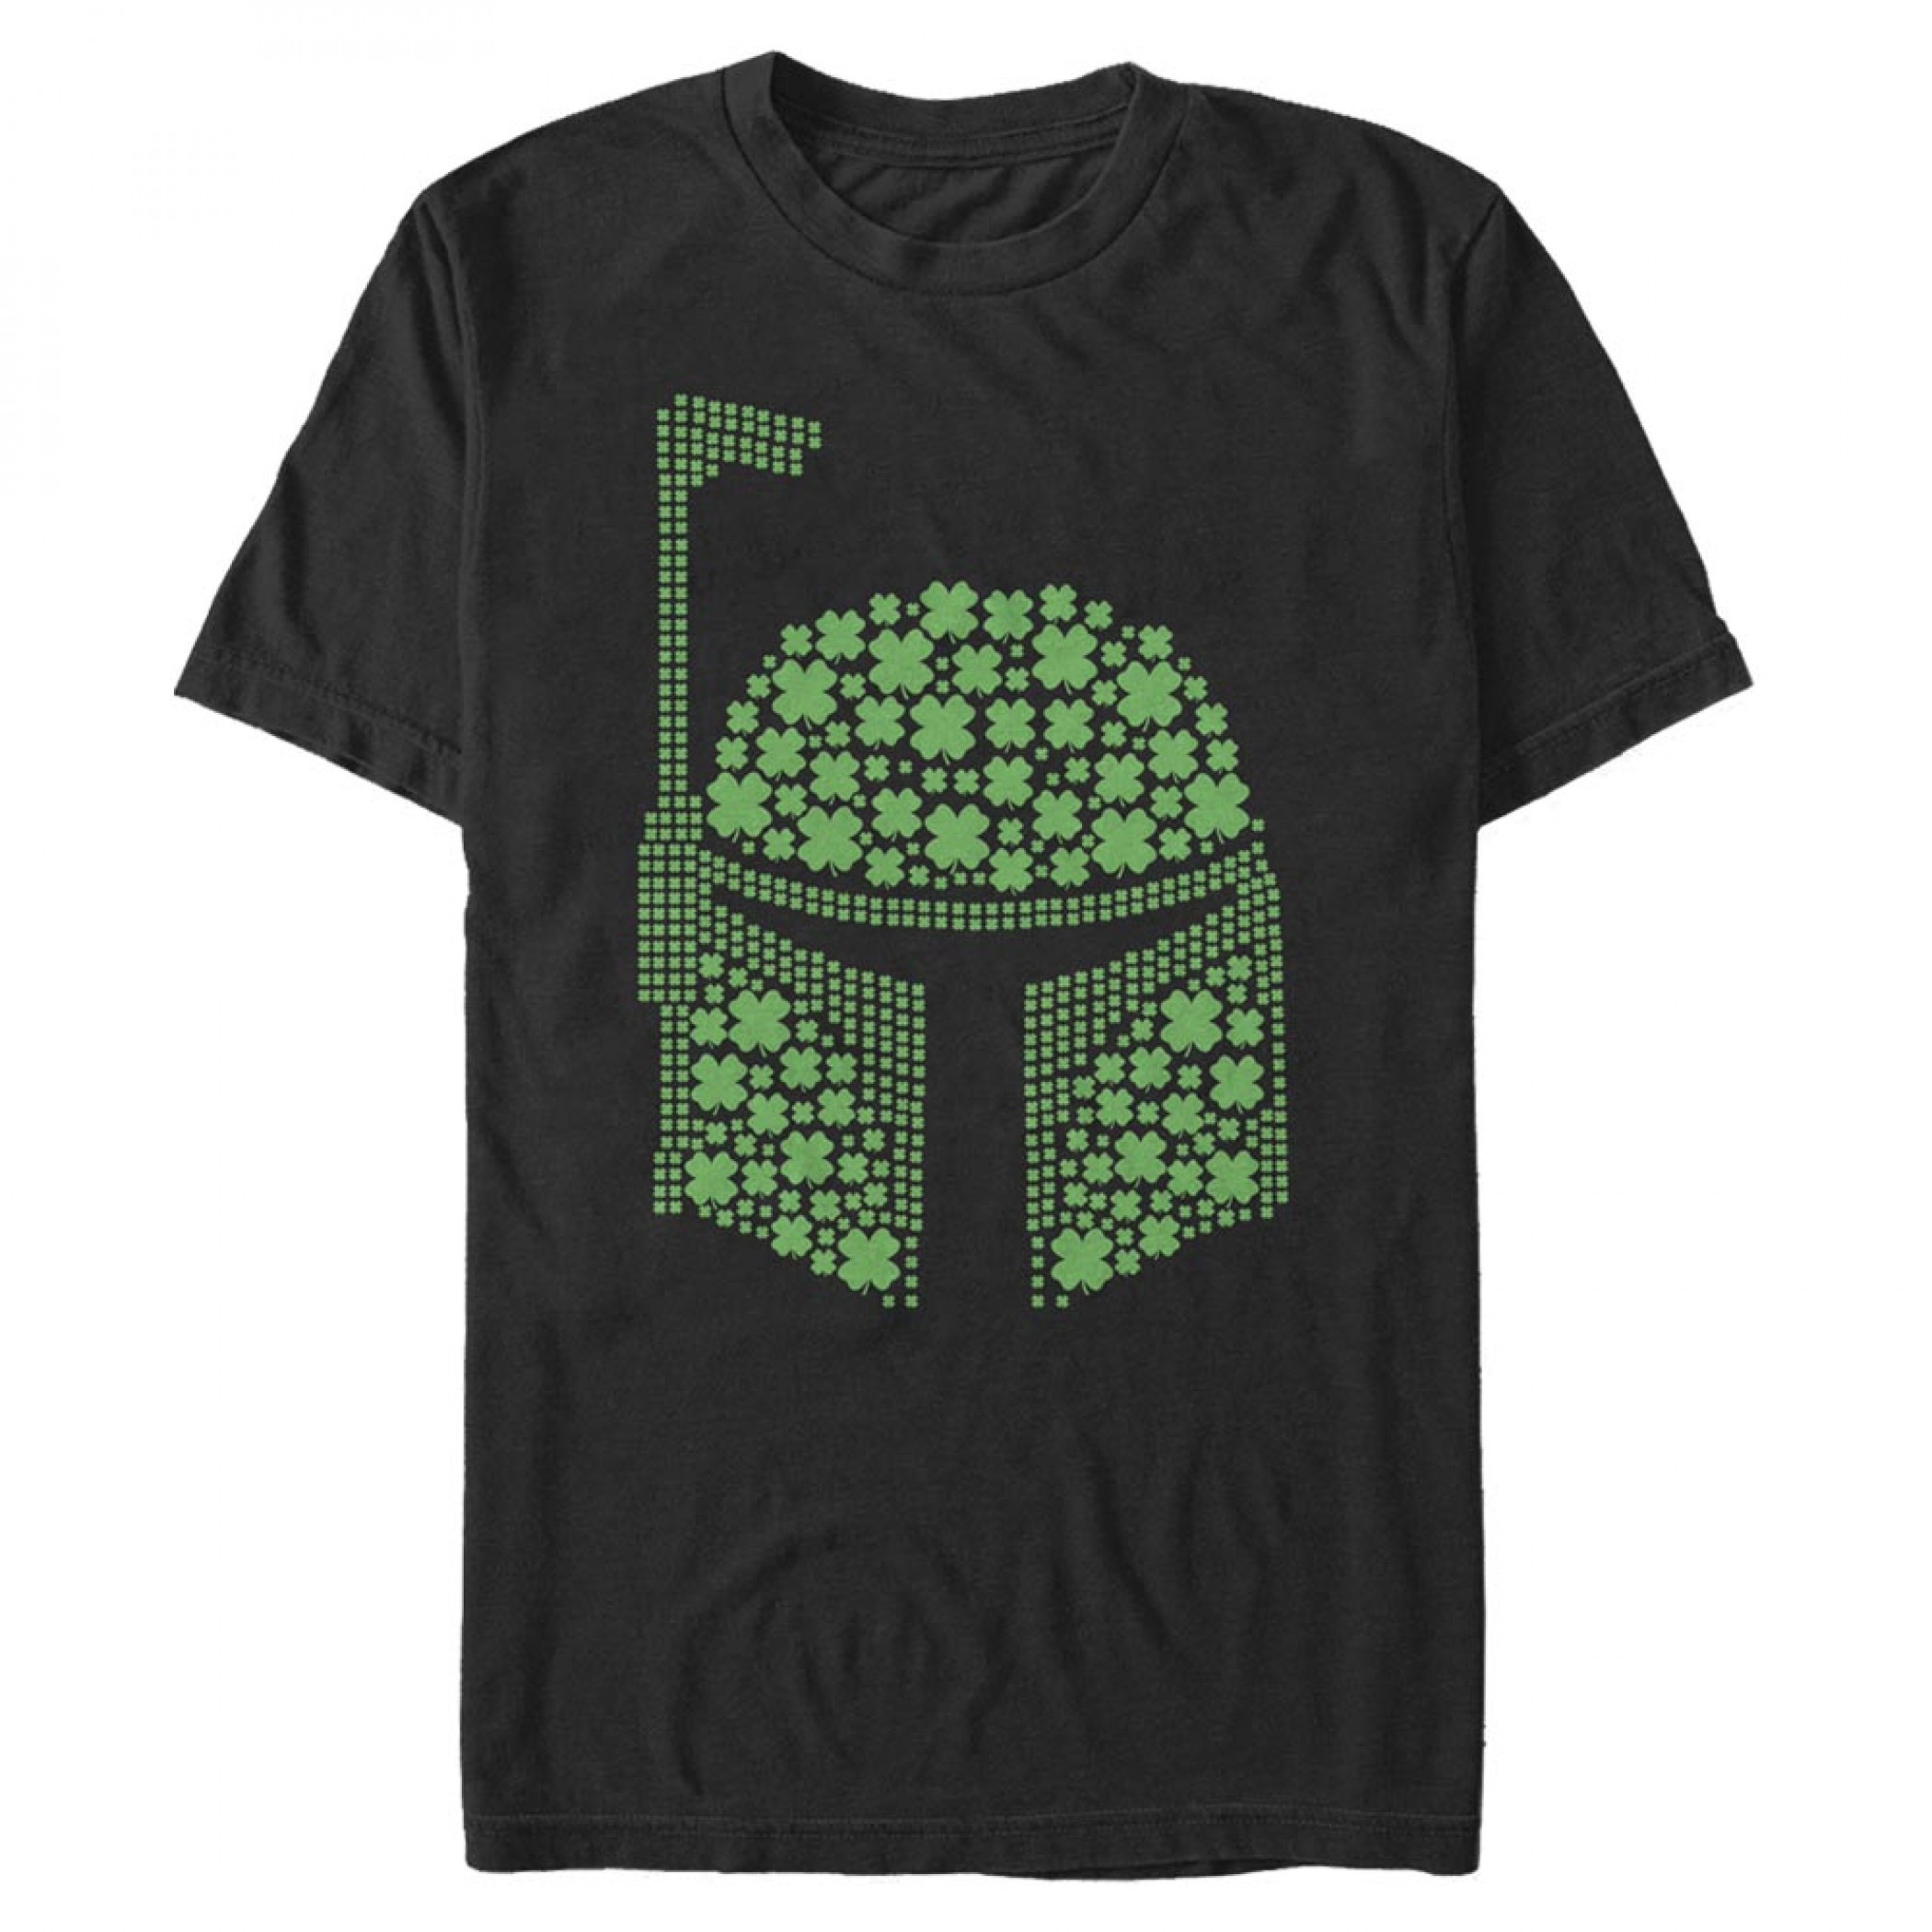 Star Wars Boba Fett Shamrocks St. Patrick's Day T-Shirt